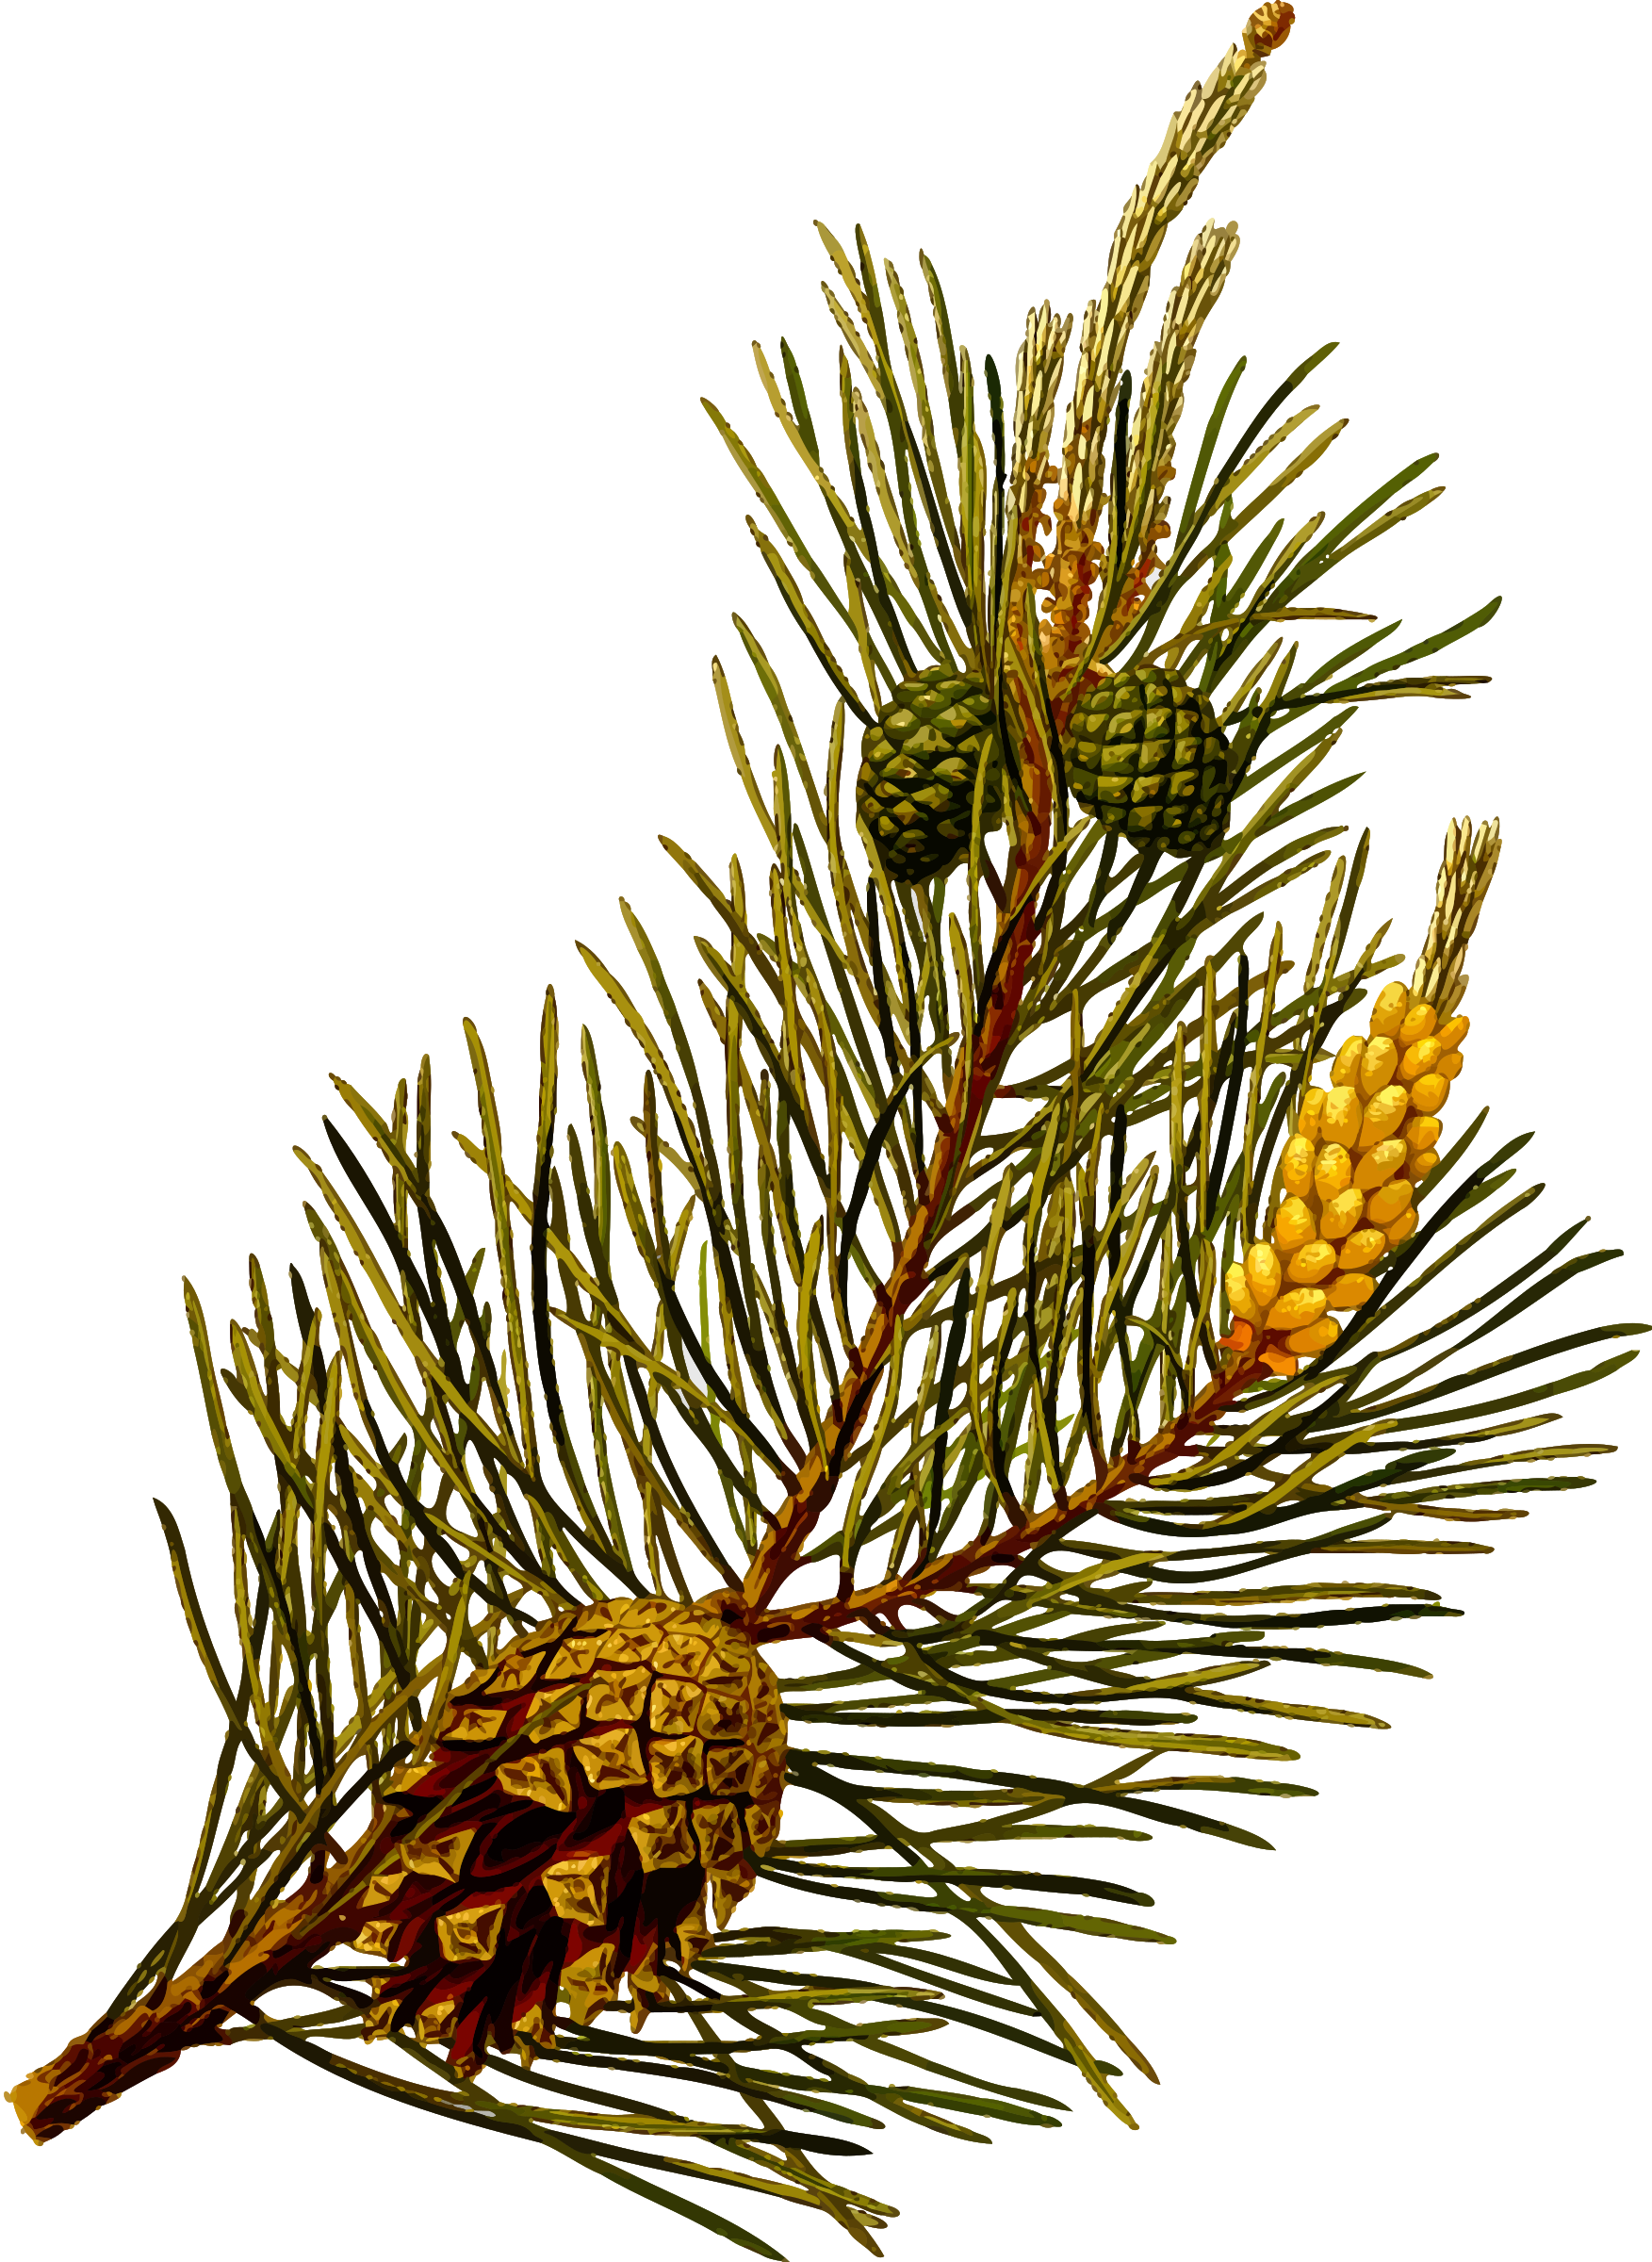 Scots pine detailed.